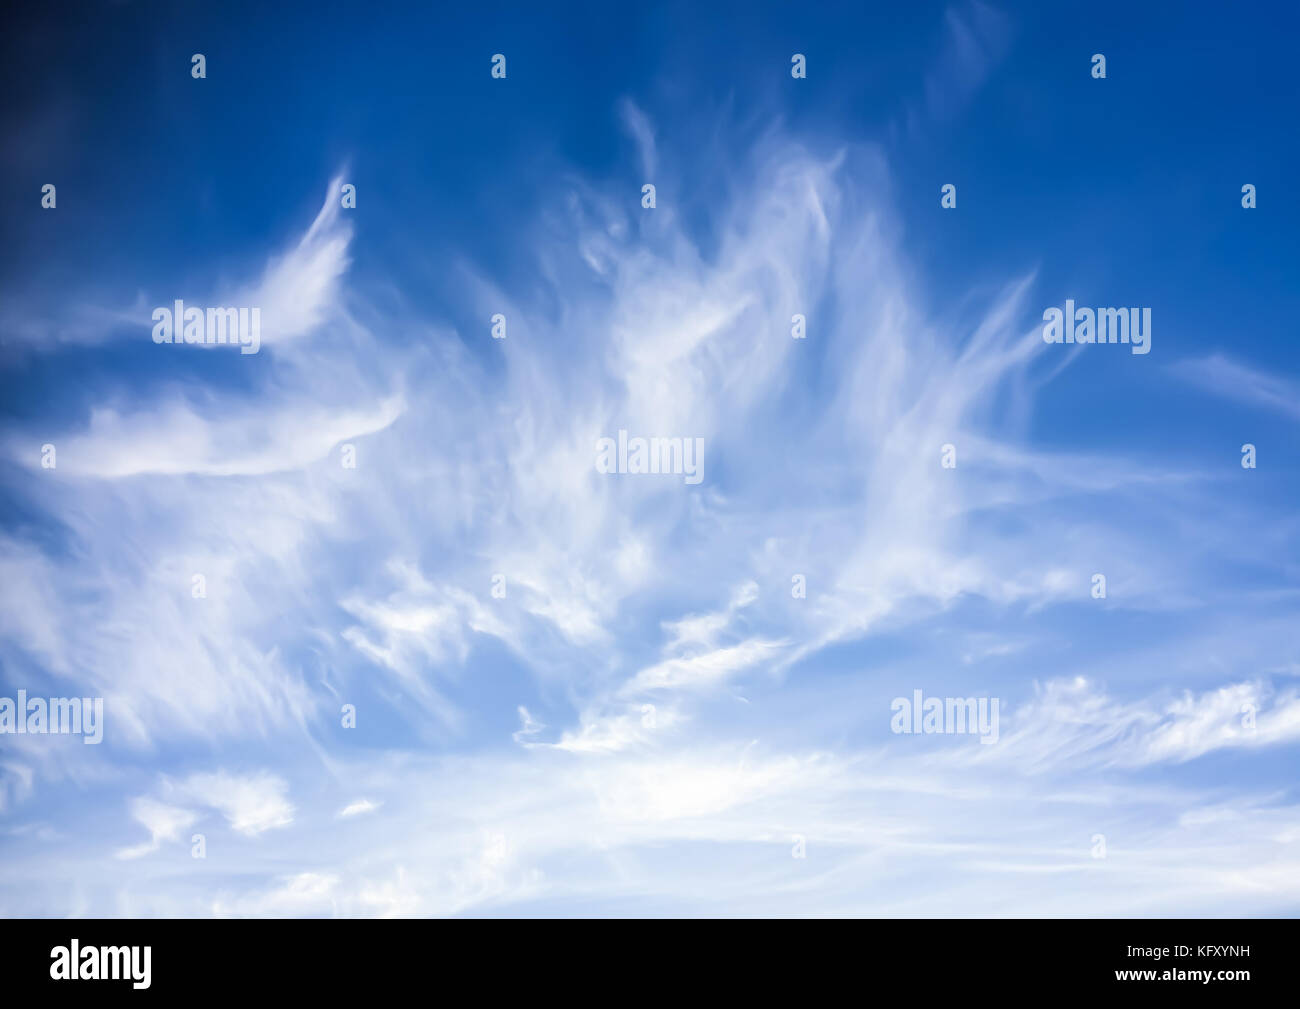 An abstract shot of a dramatic wispy cloud formation in a blue sky. - Stock Image